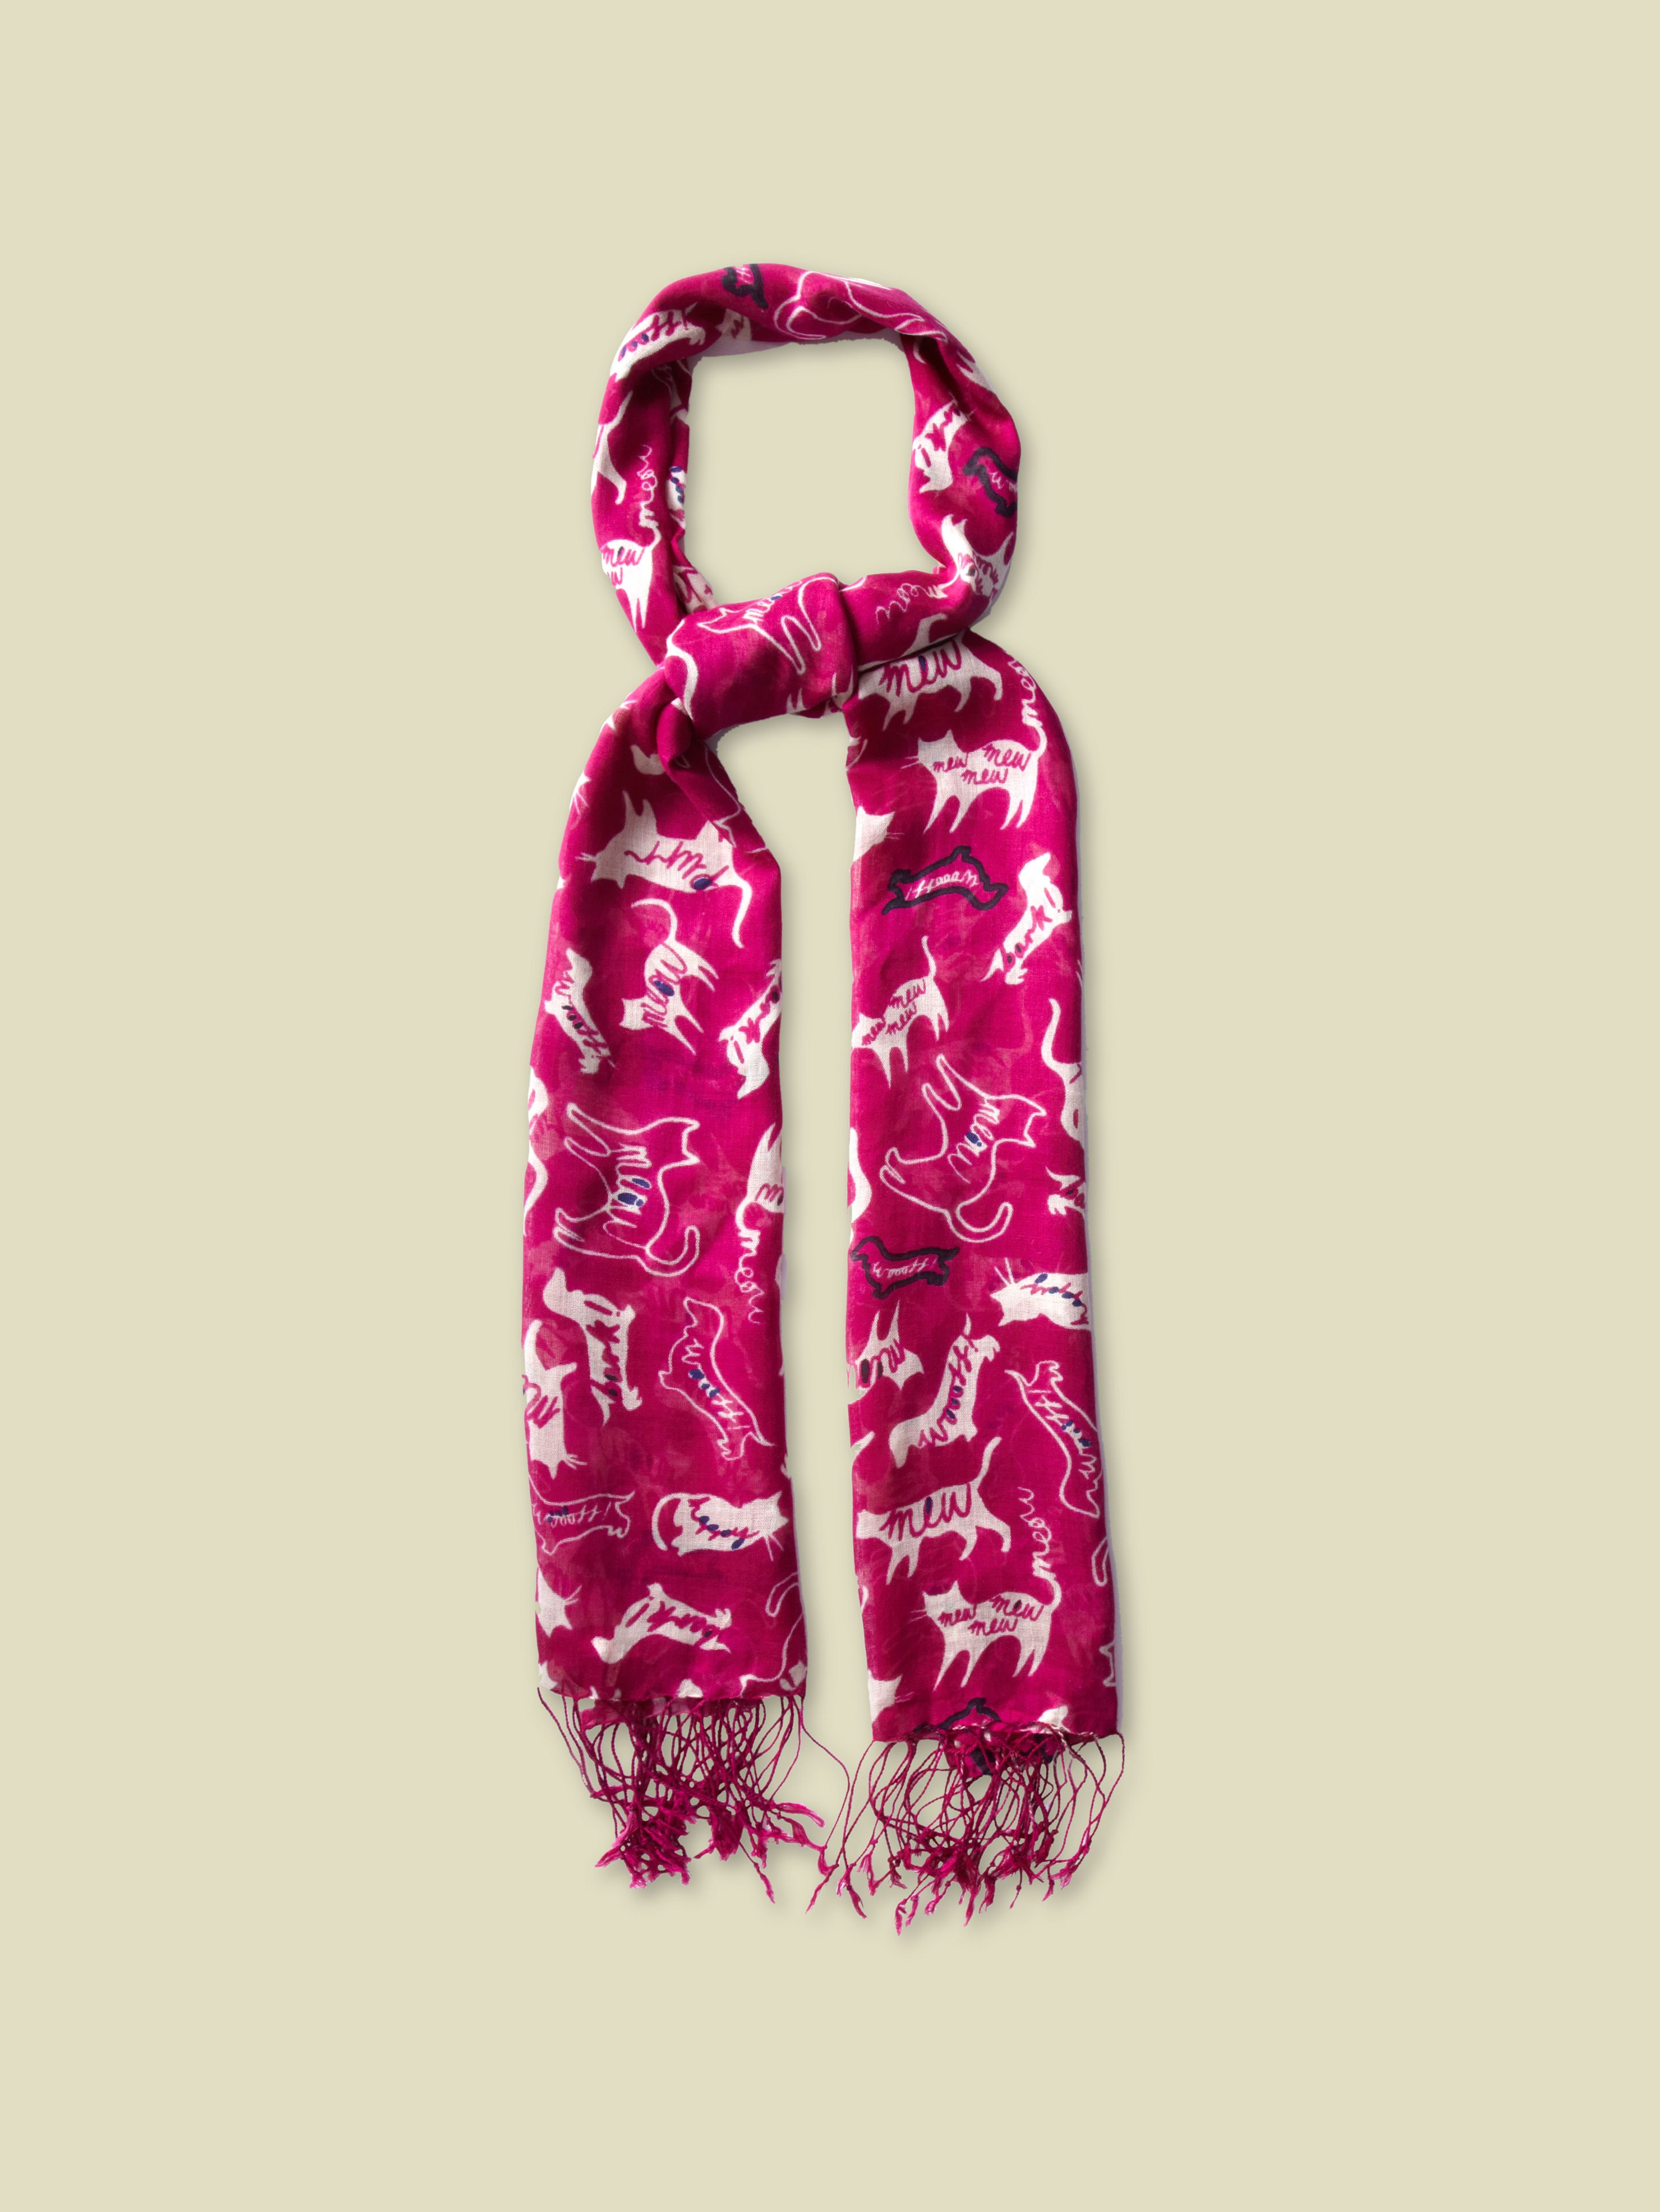 Raining cats and dogs scarf